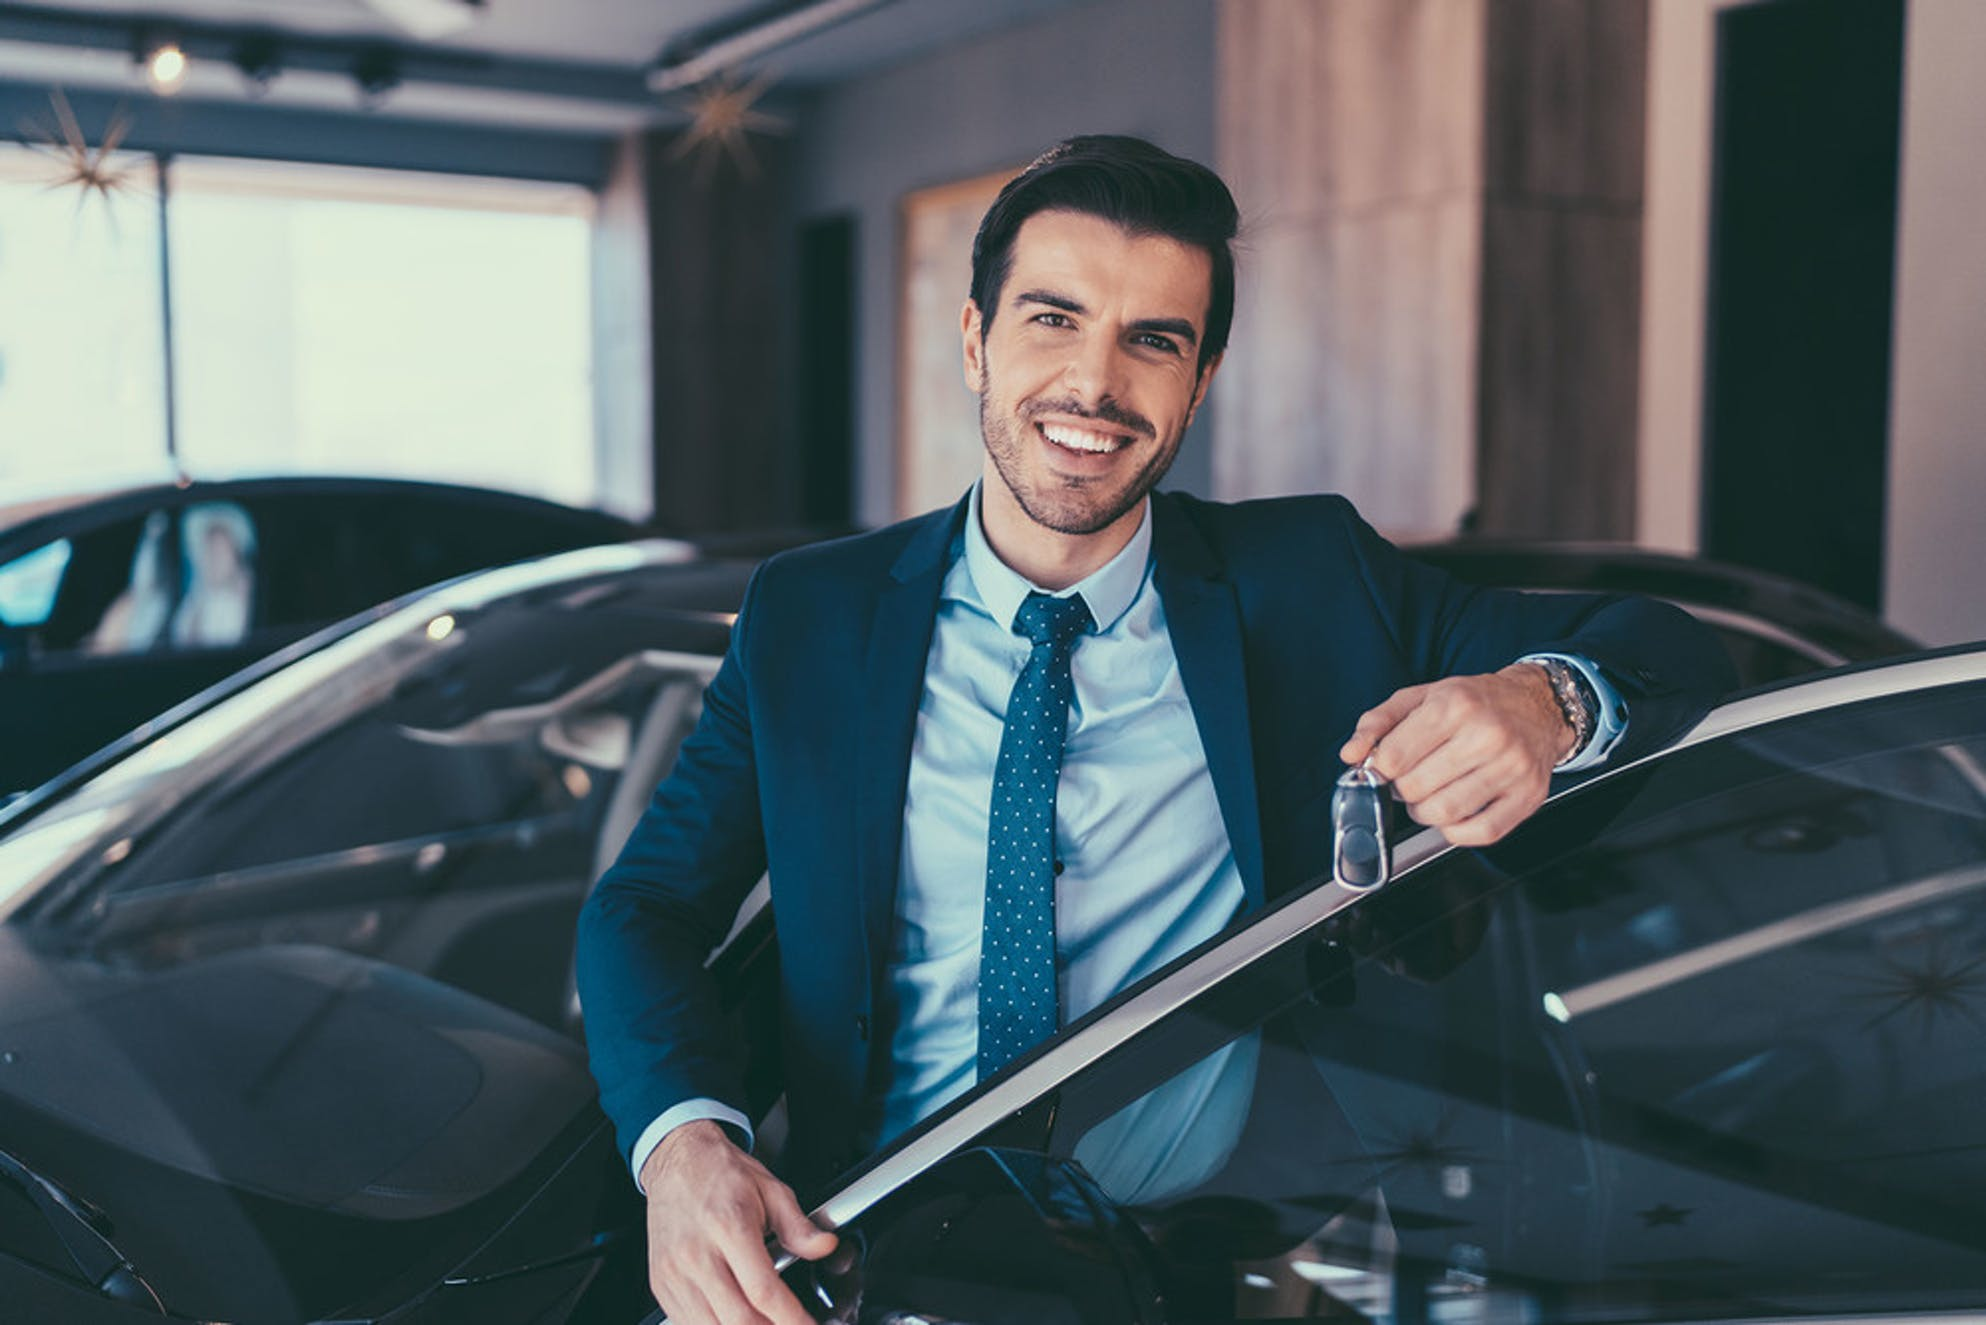 Don't buy an expensive car with your tax refund